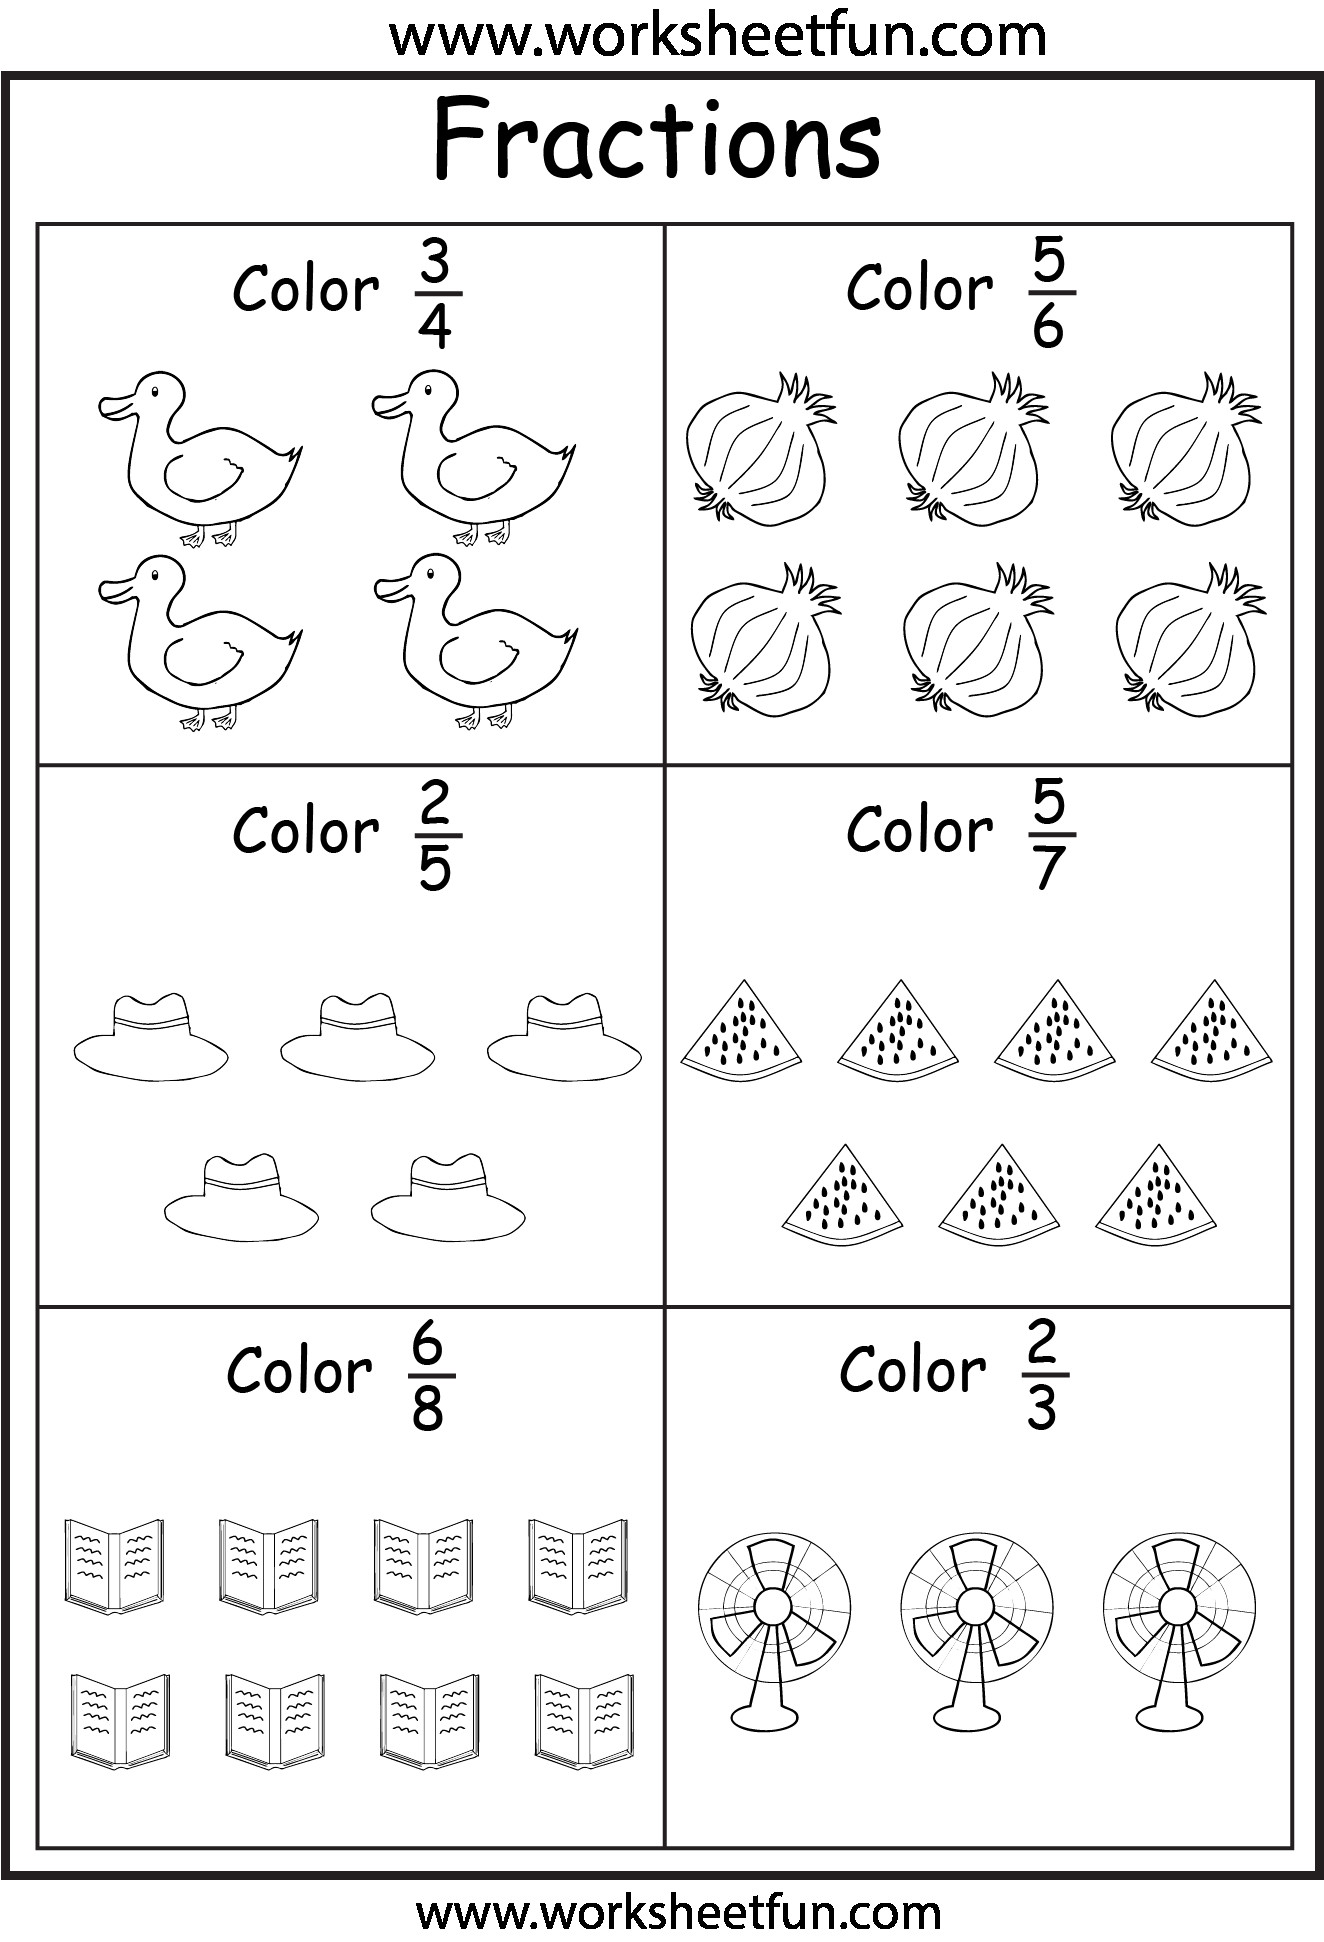 4 Free Math Worksheets Third Grade 3 Fractions And